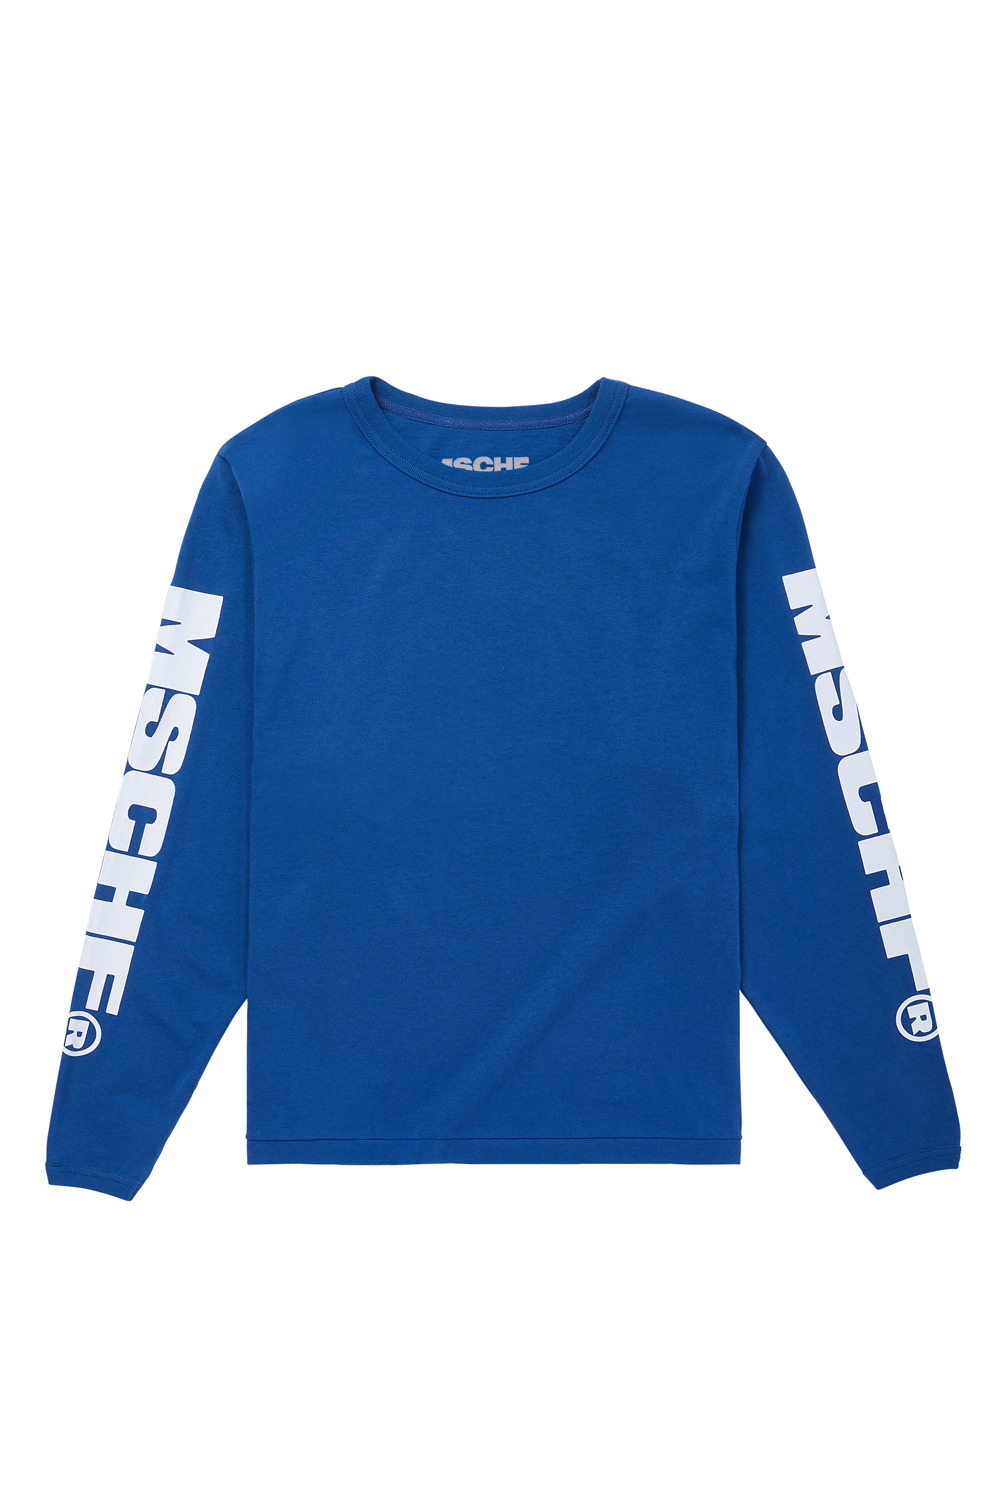 MSCHF LONG SLEEVE_blue